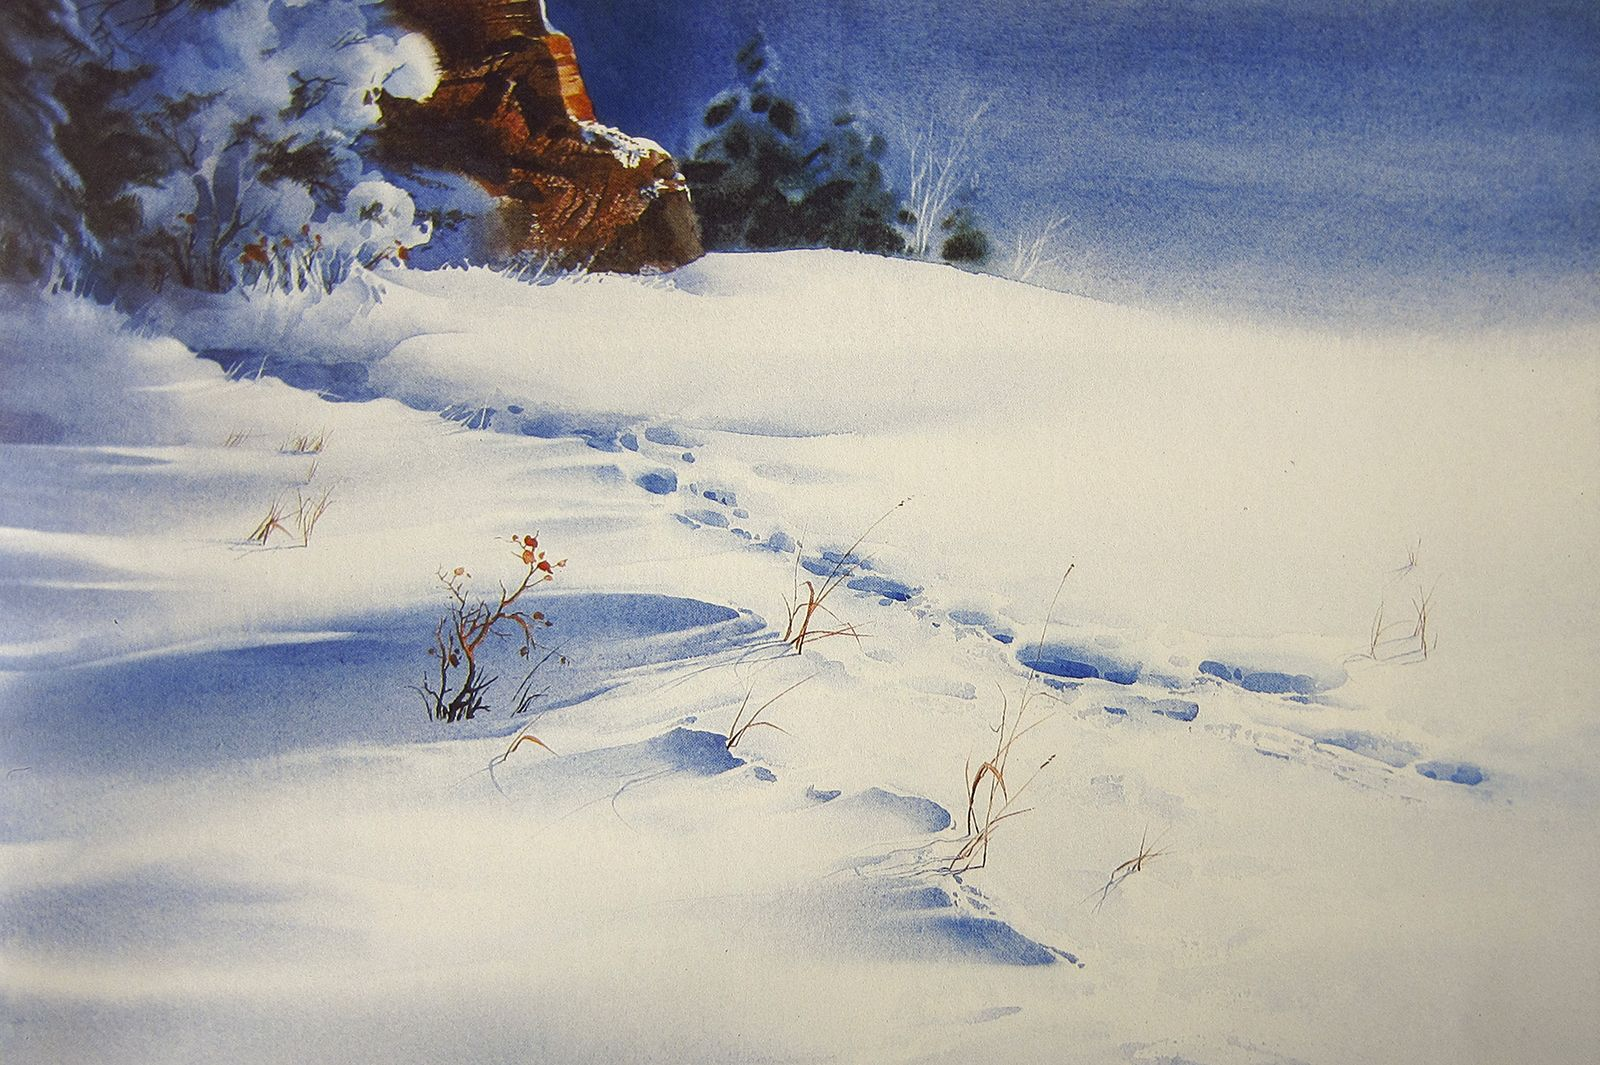 Zoltan Szabo Watercolor Watercolor Landscape Paintings Winter